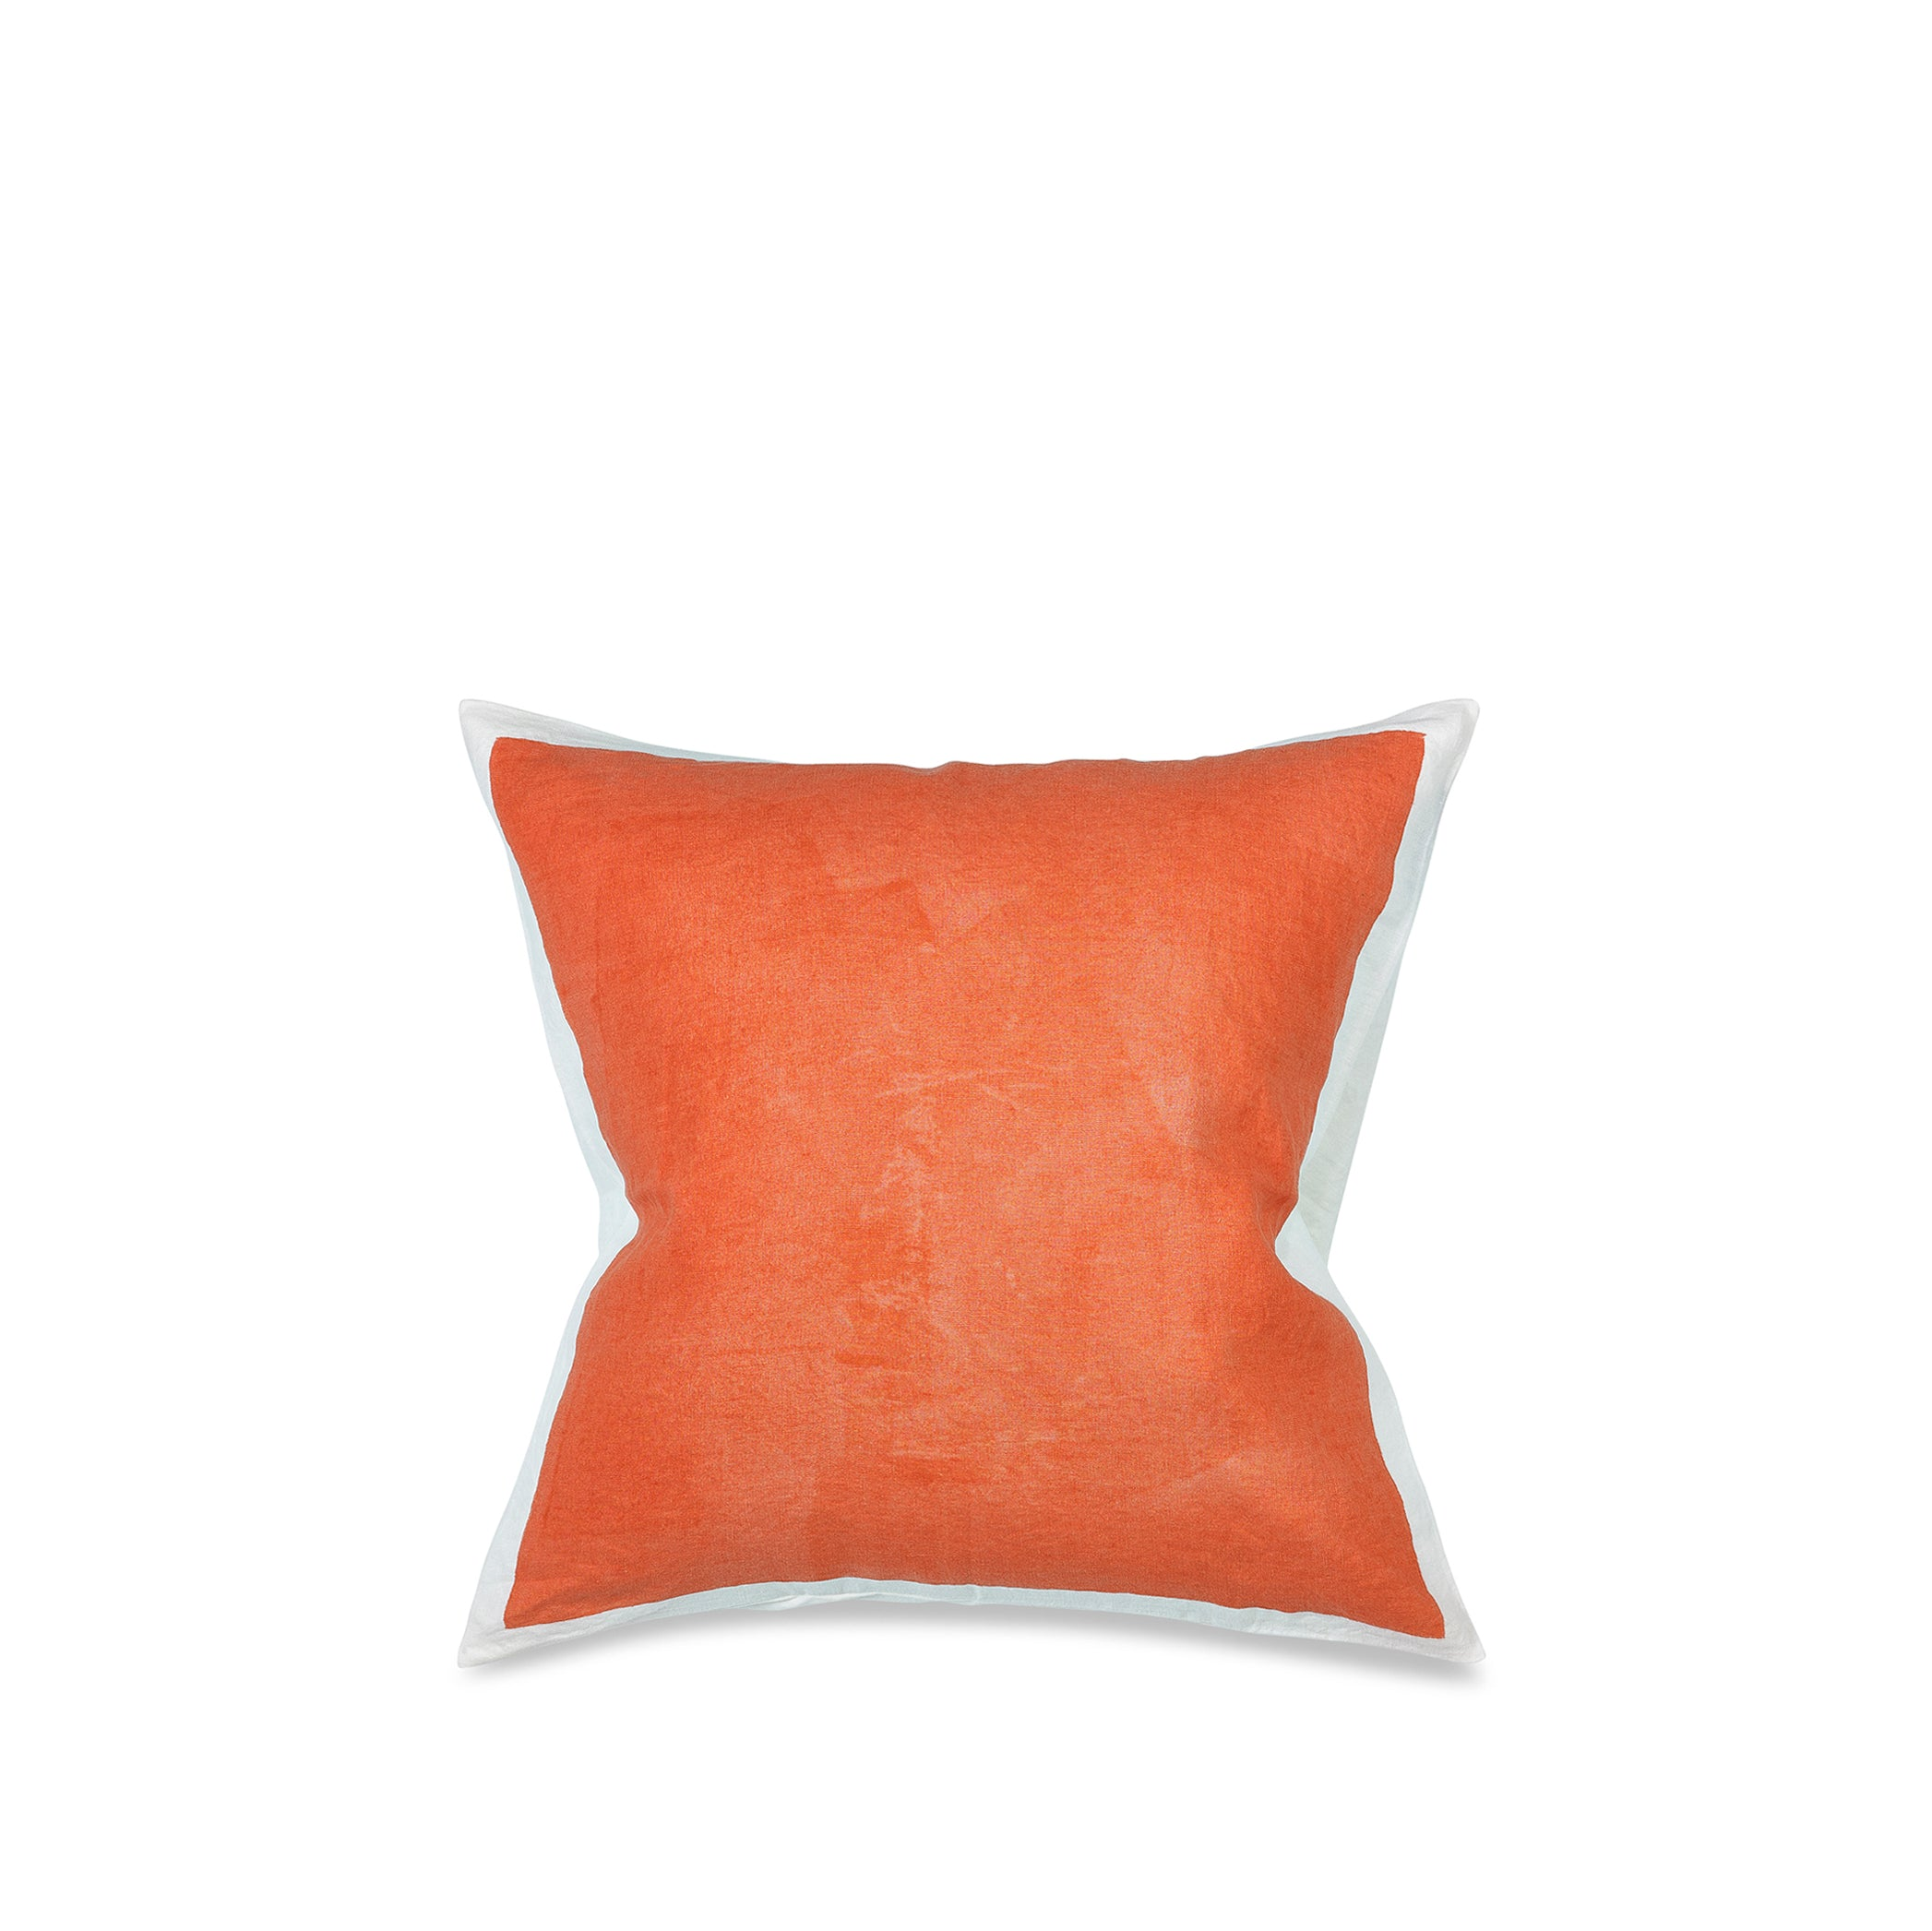 Hand Painted Linen Cushion Cover in Coral, 50cm x 50cm